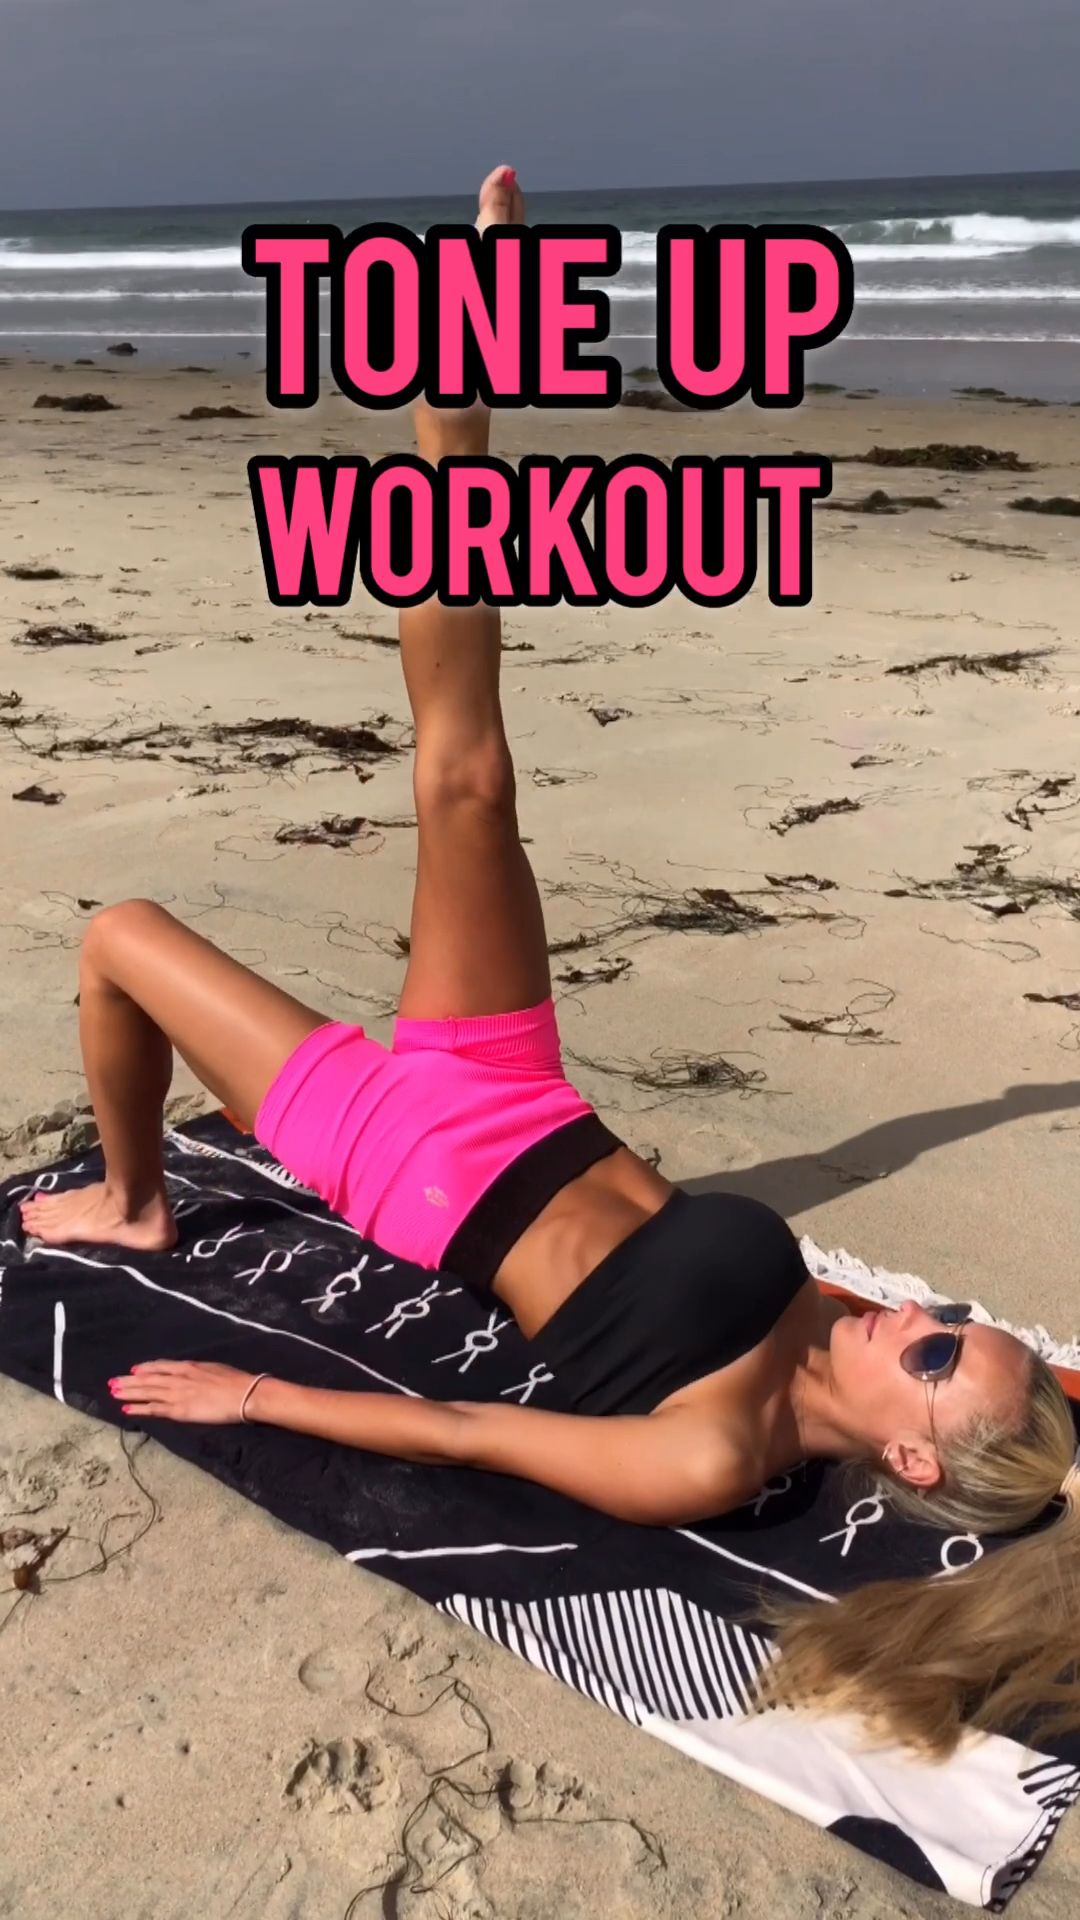 Tone Up Workout- Follow @ambrymehr IG for free workouts!  #coreworkouts